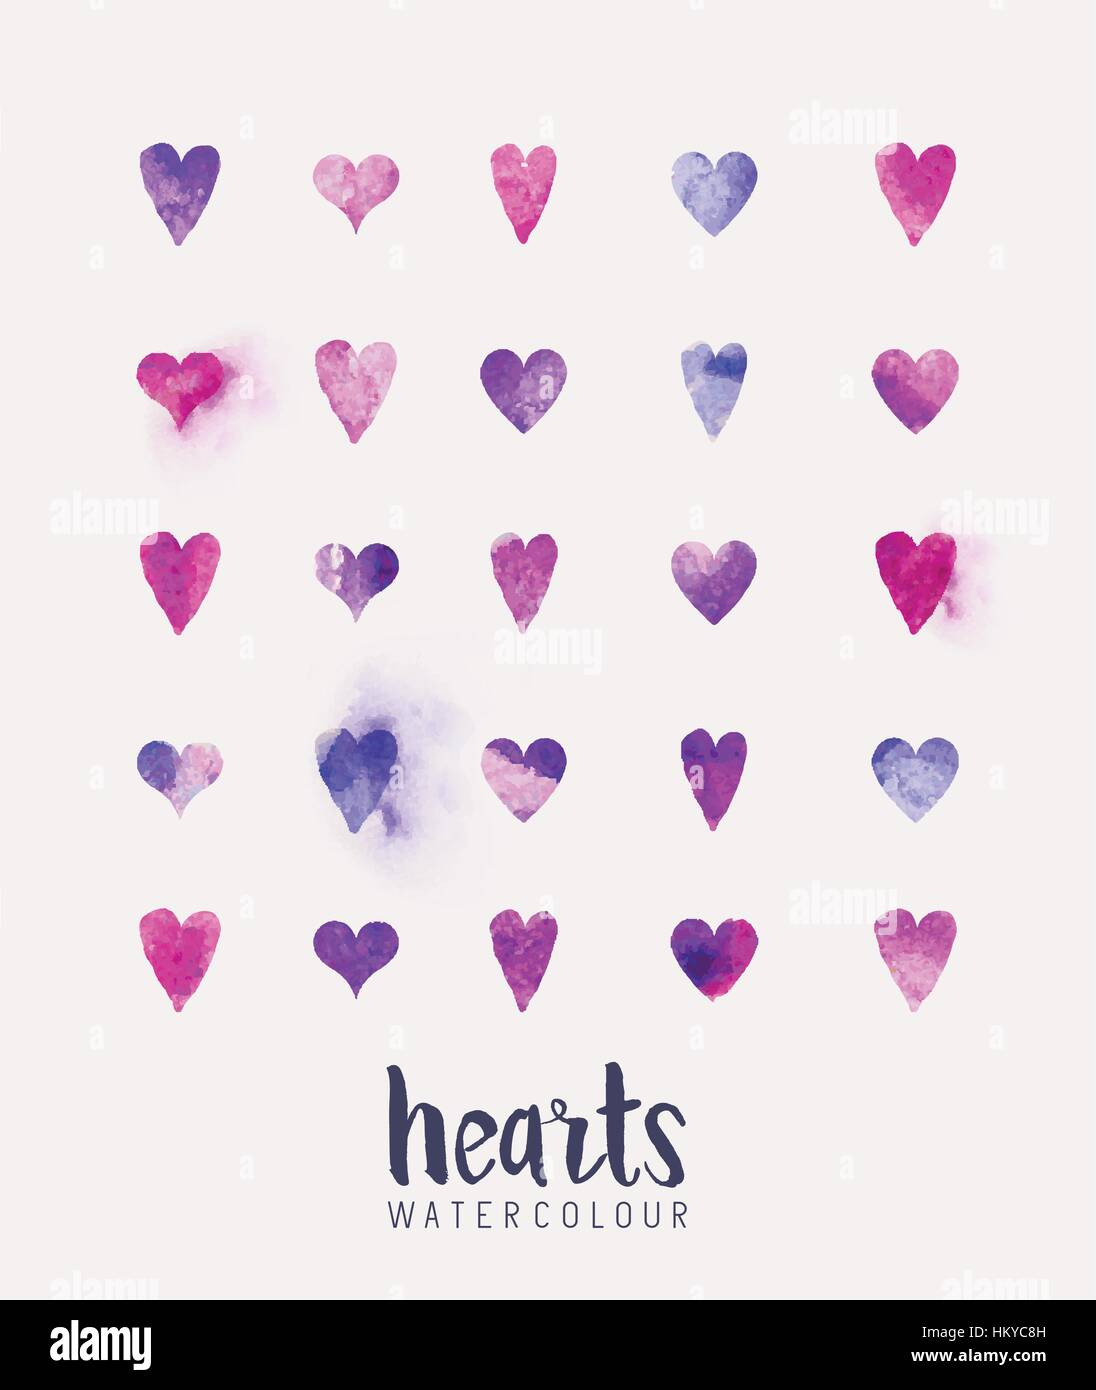 A collection of love hearts in watercolour. Vector illustration - Stock Image